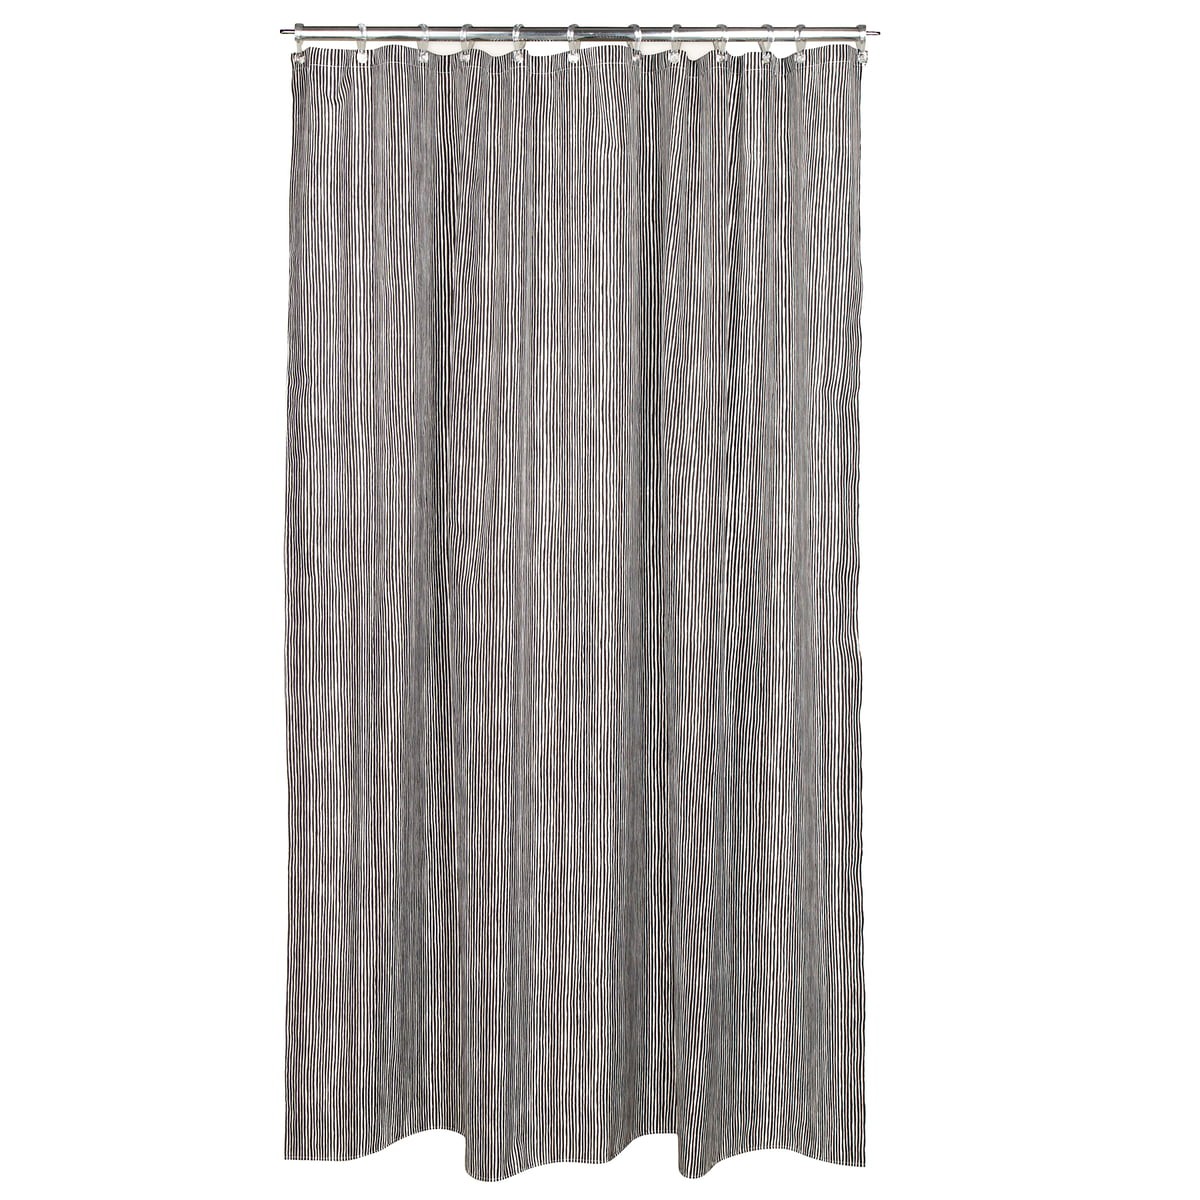 Varvunraita Shower Curtain By Marimekko In Black White